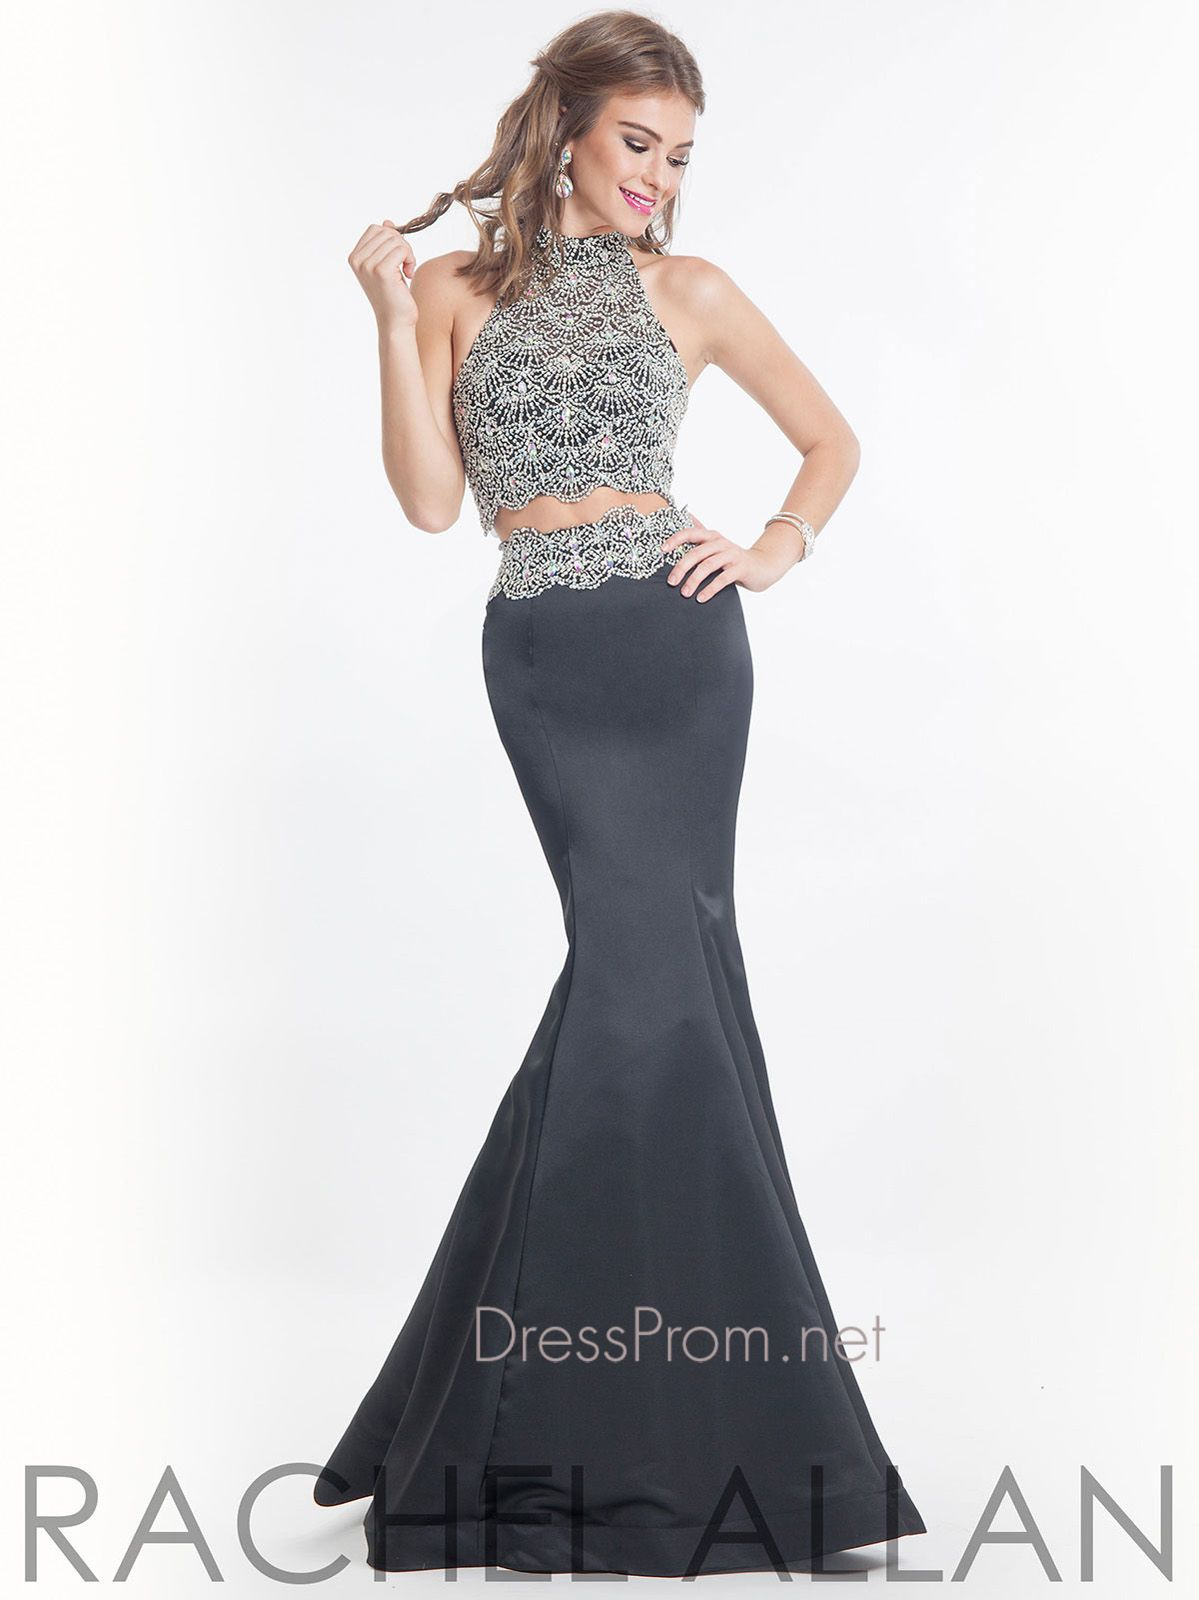 Show off your amazing curves in this form fitting mermaid rachel